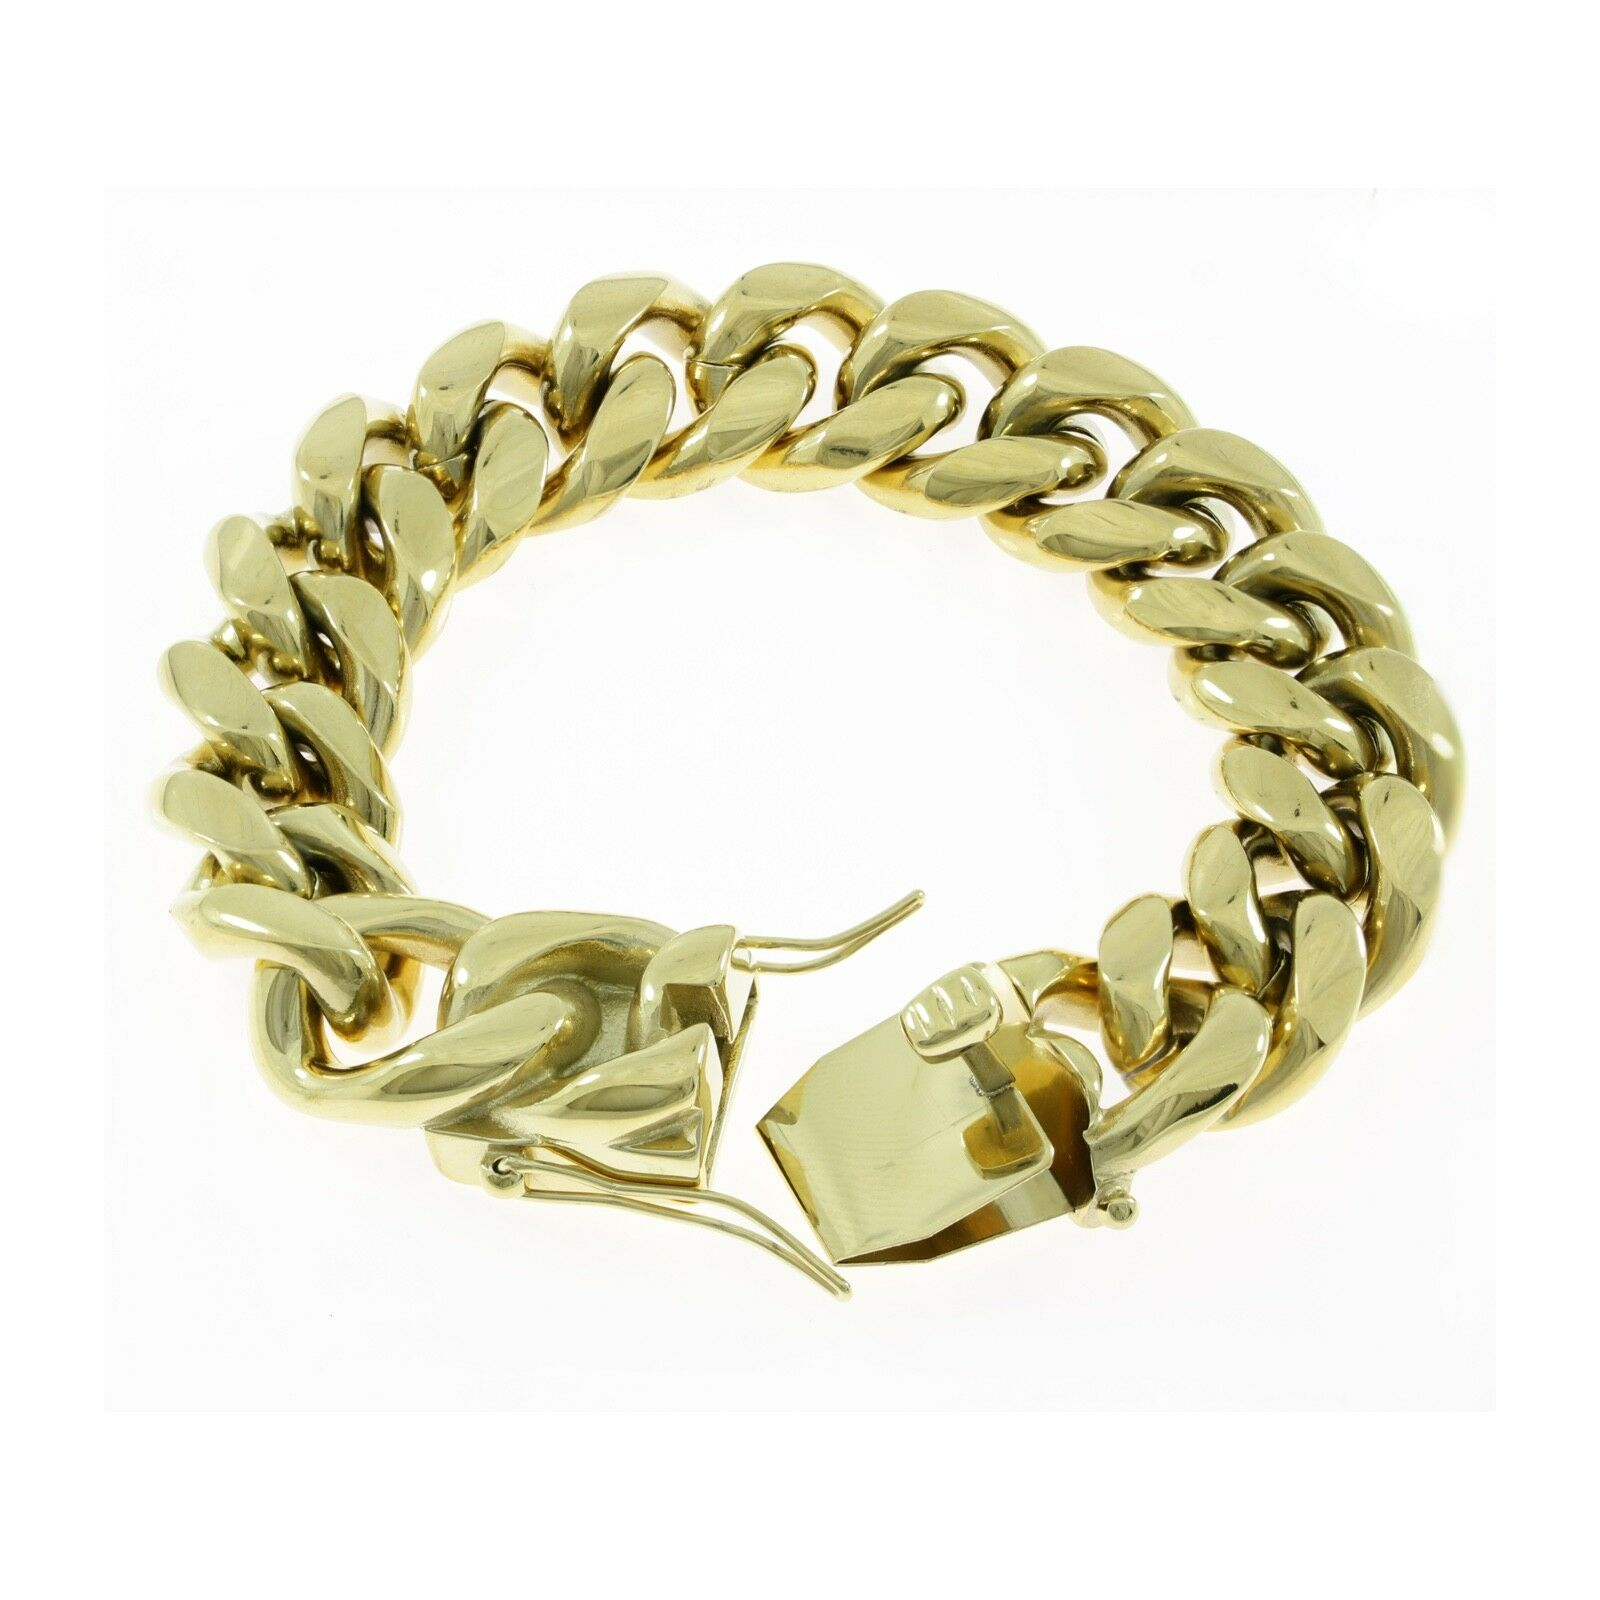 c9dff175805f6 18mm Men's Miami Cuban Link Bracelet 14k Gold Plated Stainless Steel ...